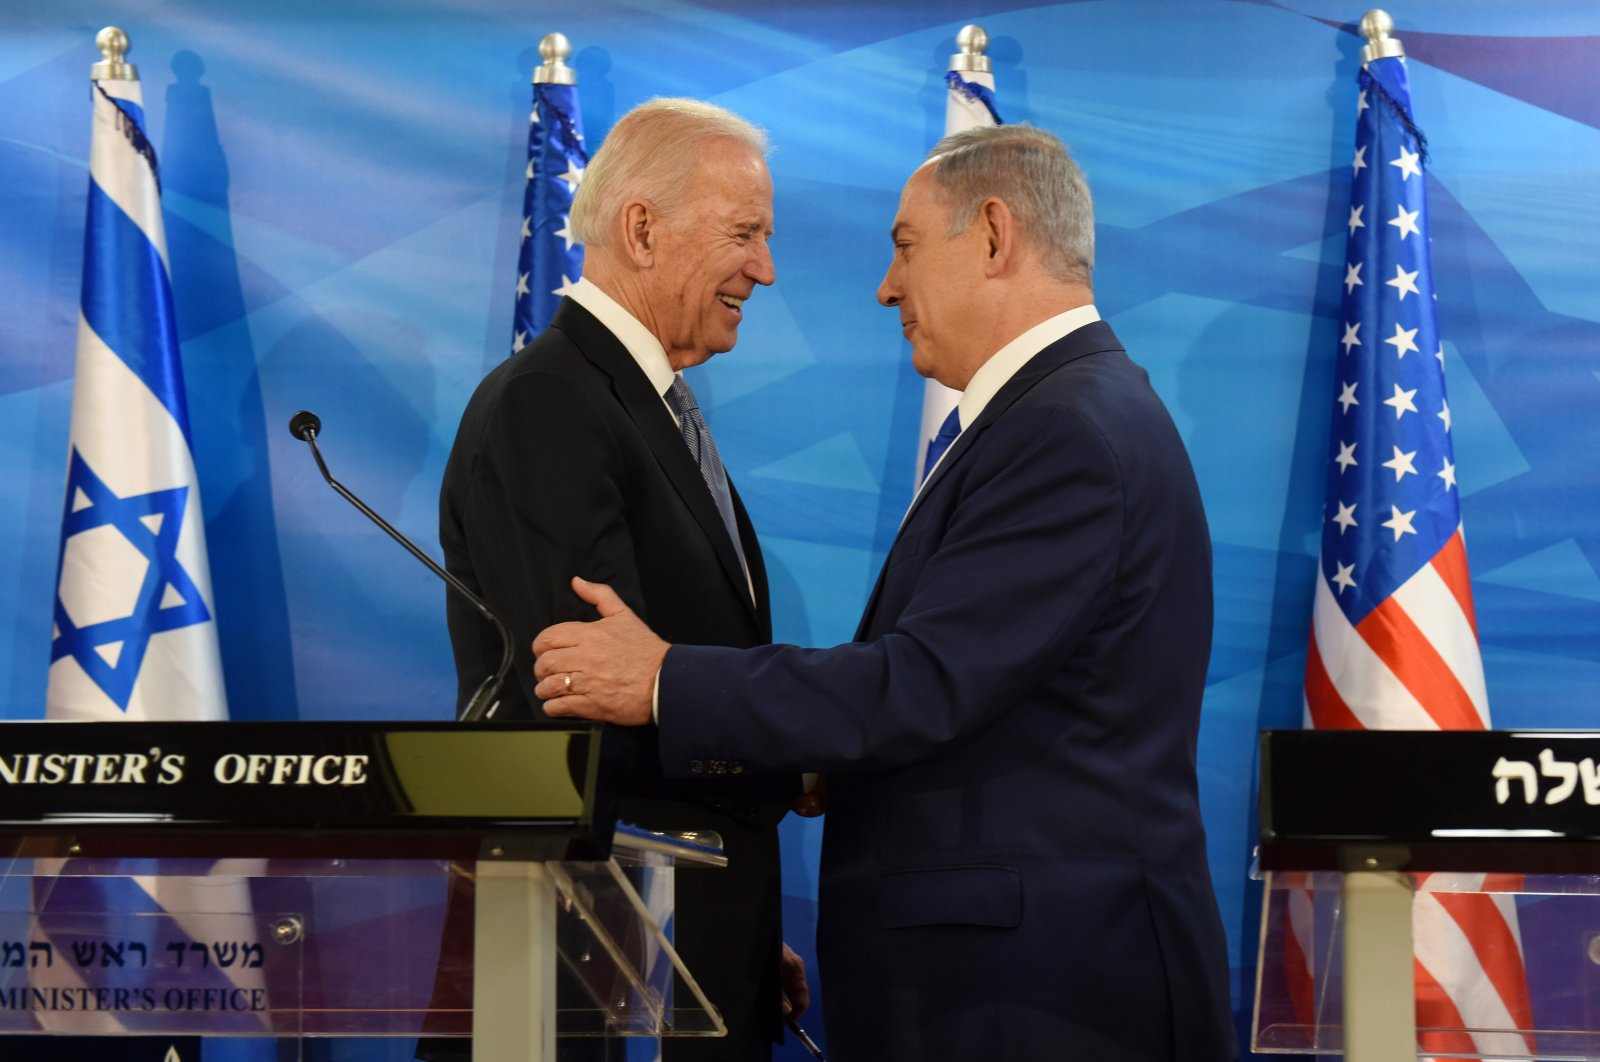 Then-U.S. Vice President Joe Biden and Israeli Prime Minister Benjamin Netanyahu shake hands while giving joint statements in the prime minister's office in Jerusalem, Israel, March 9, 2016. (AP Photo)